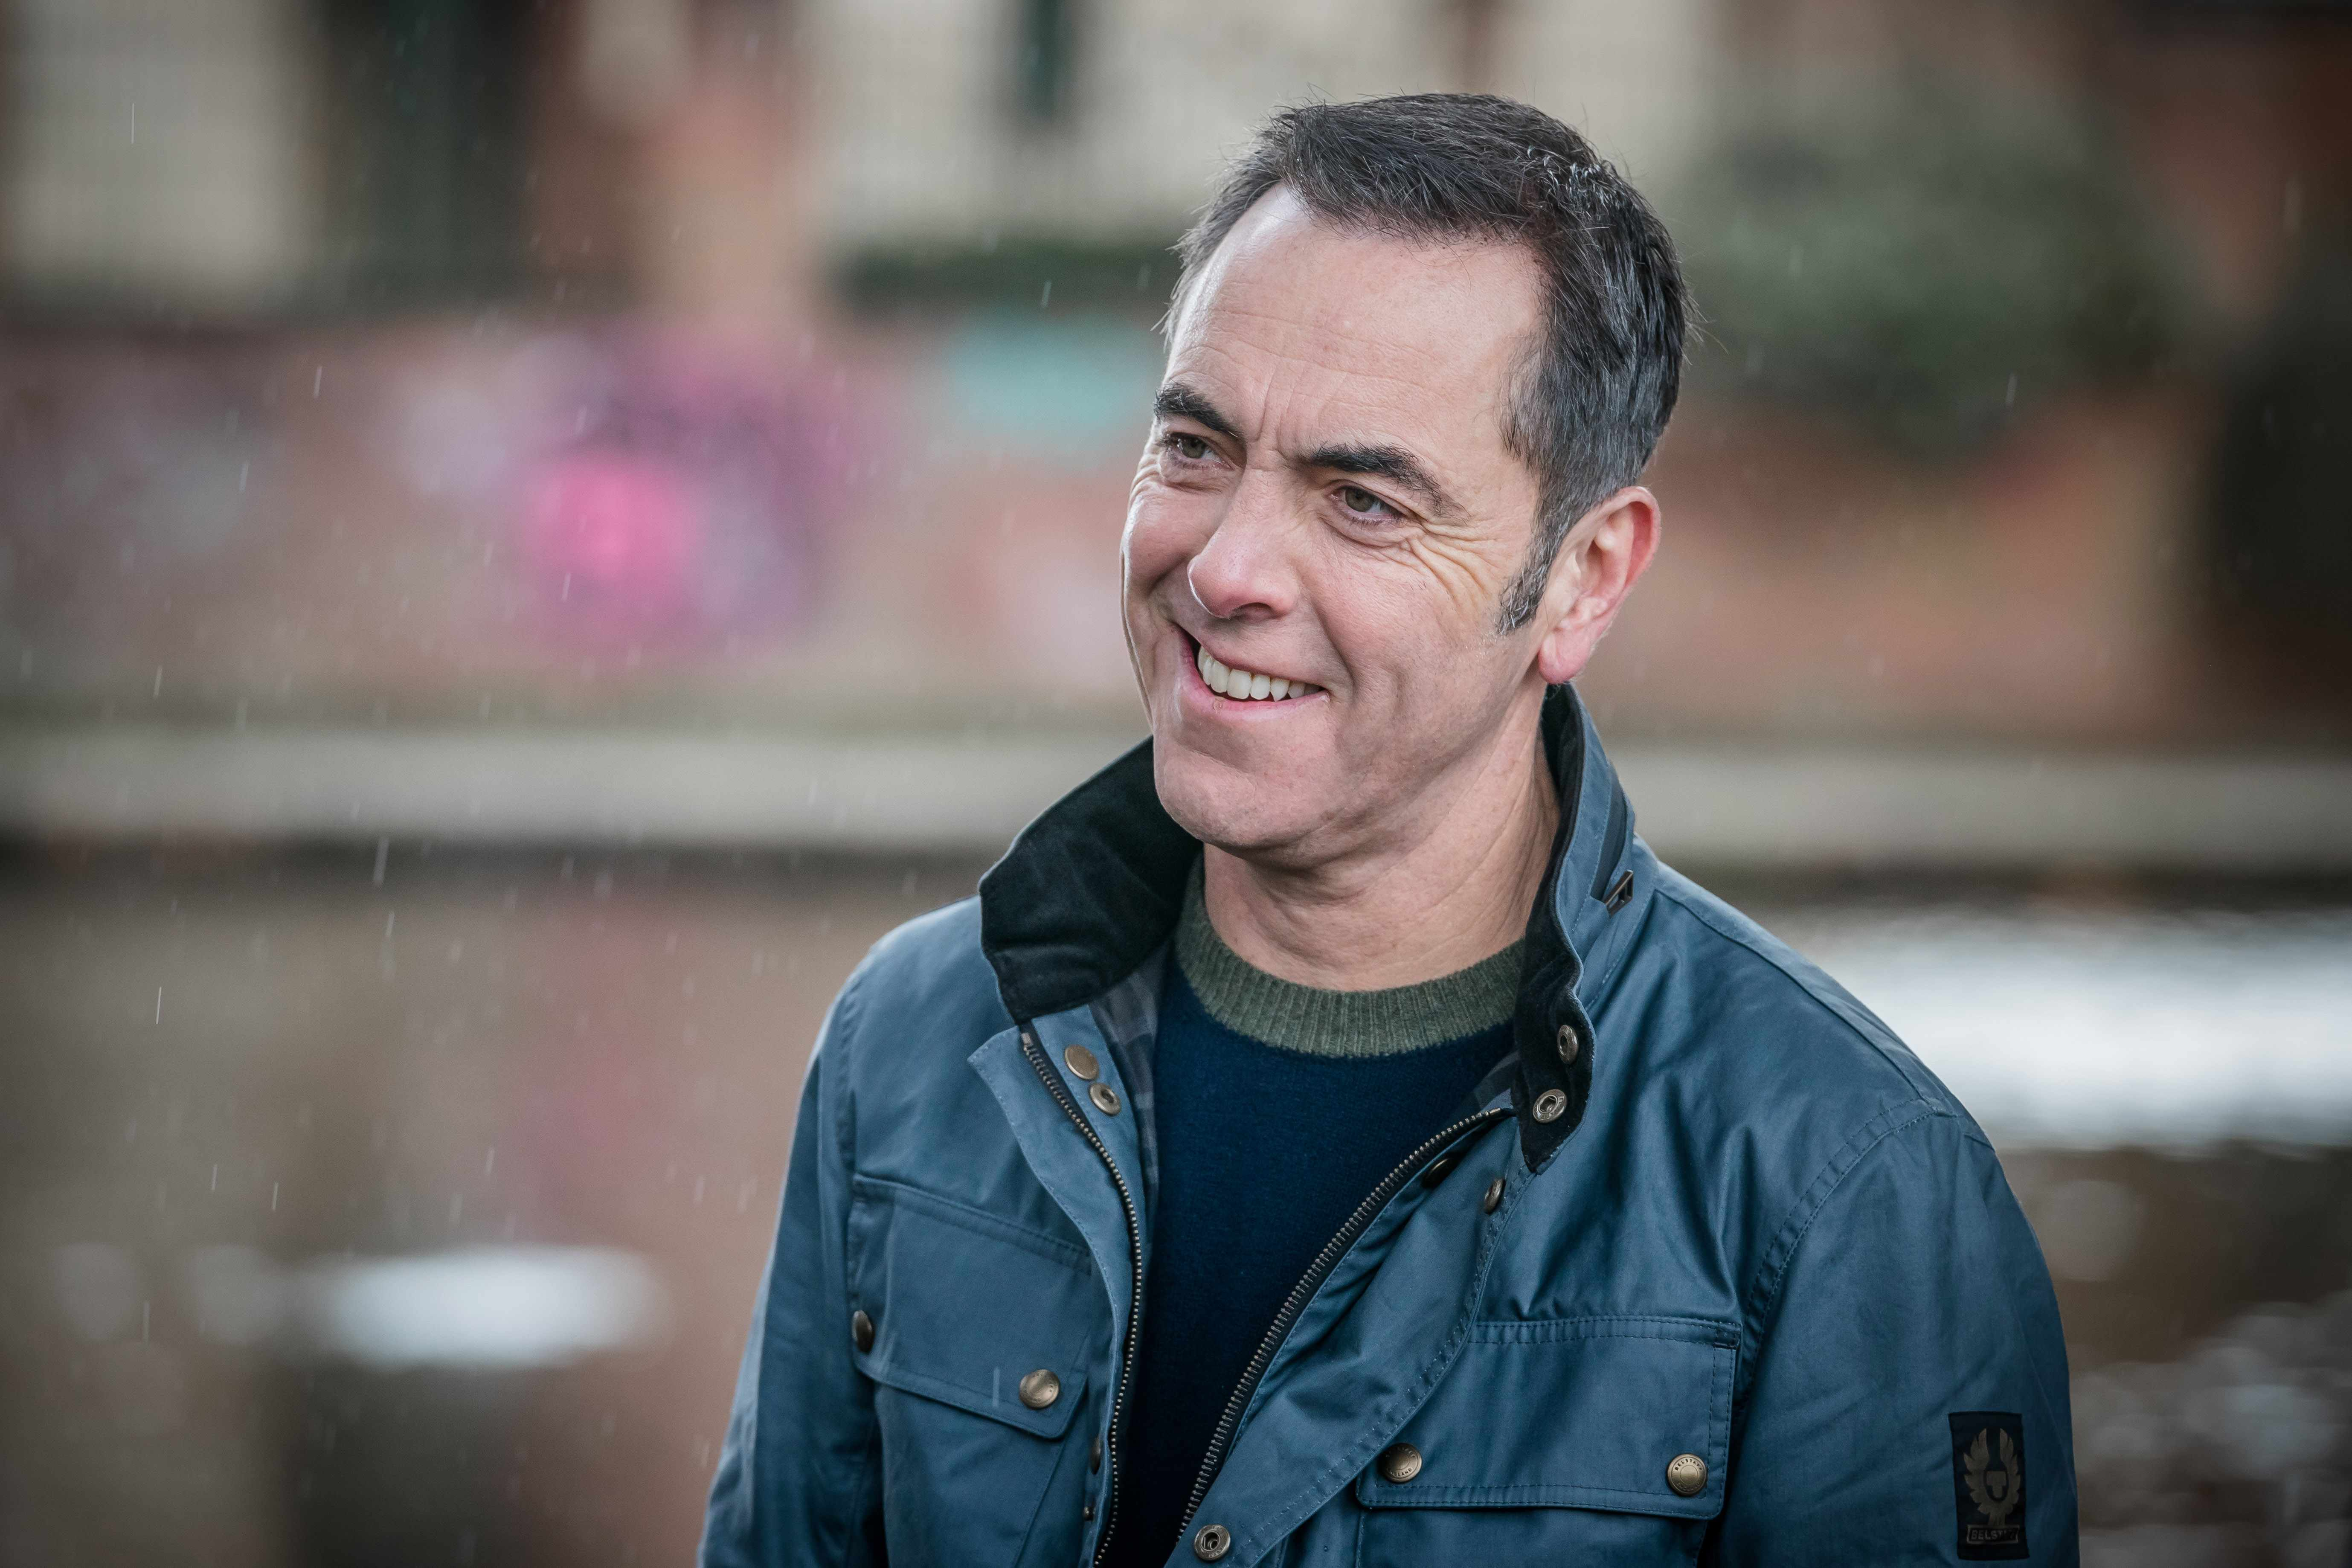 This image is strictly embargoed until 00.01 Tuesday 8th January 2019